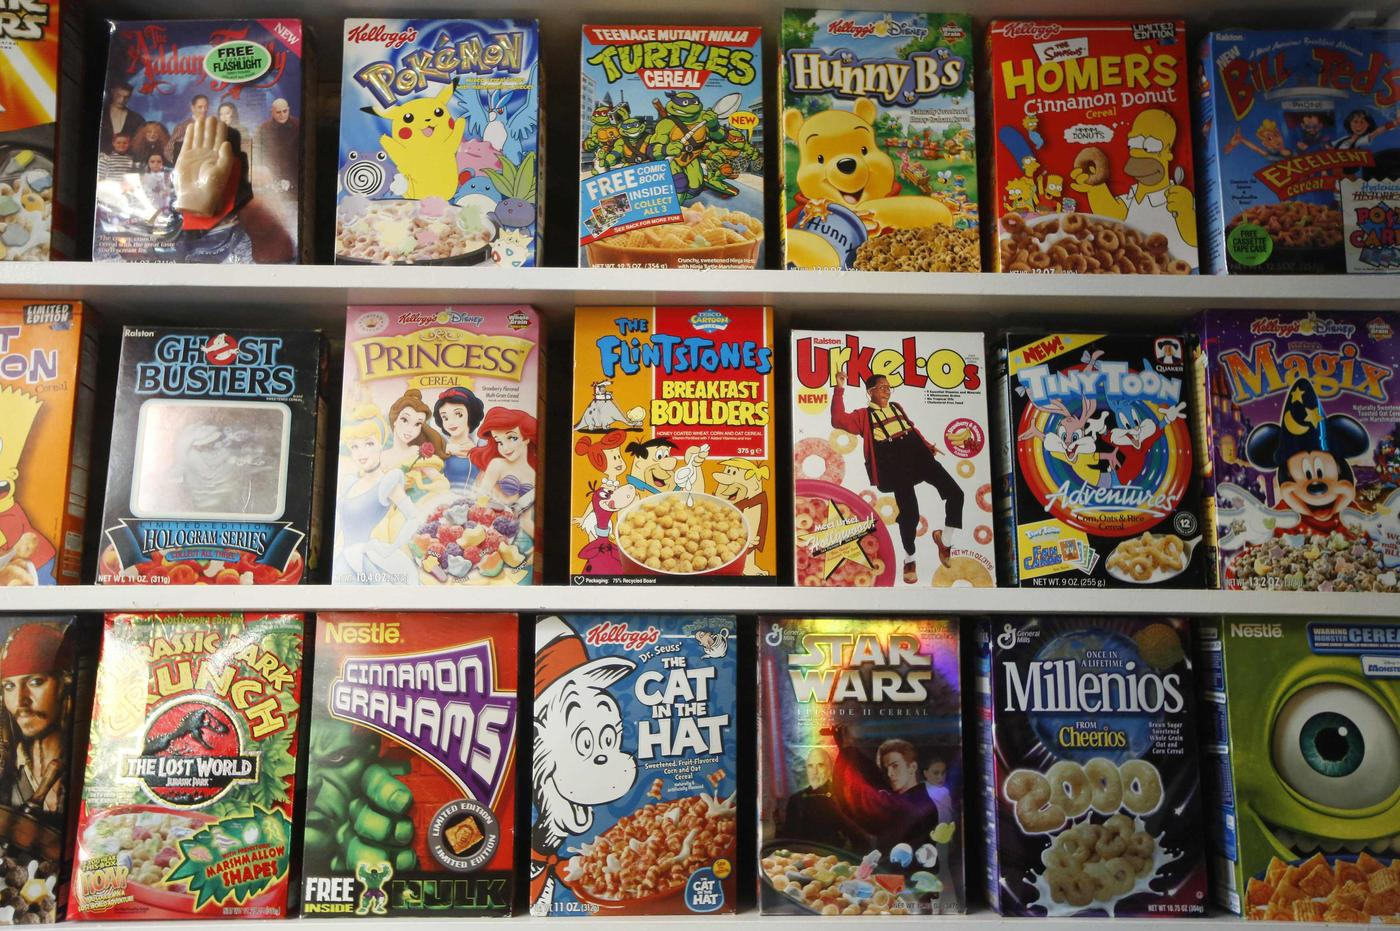 Is the Cereal Killer cafe actually any good?